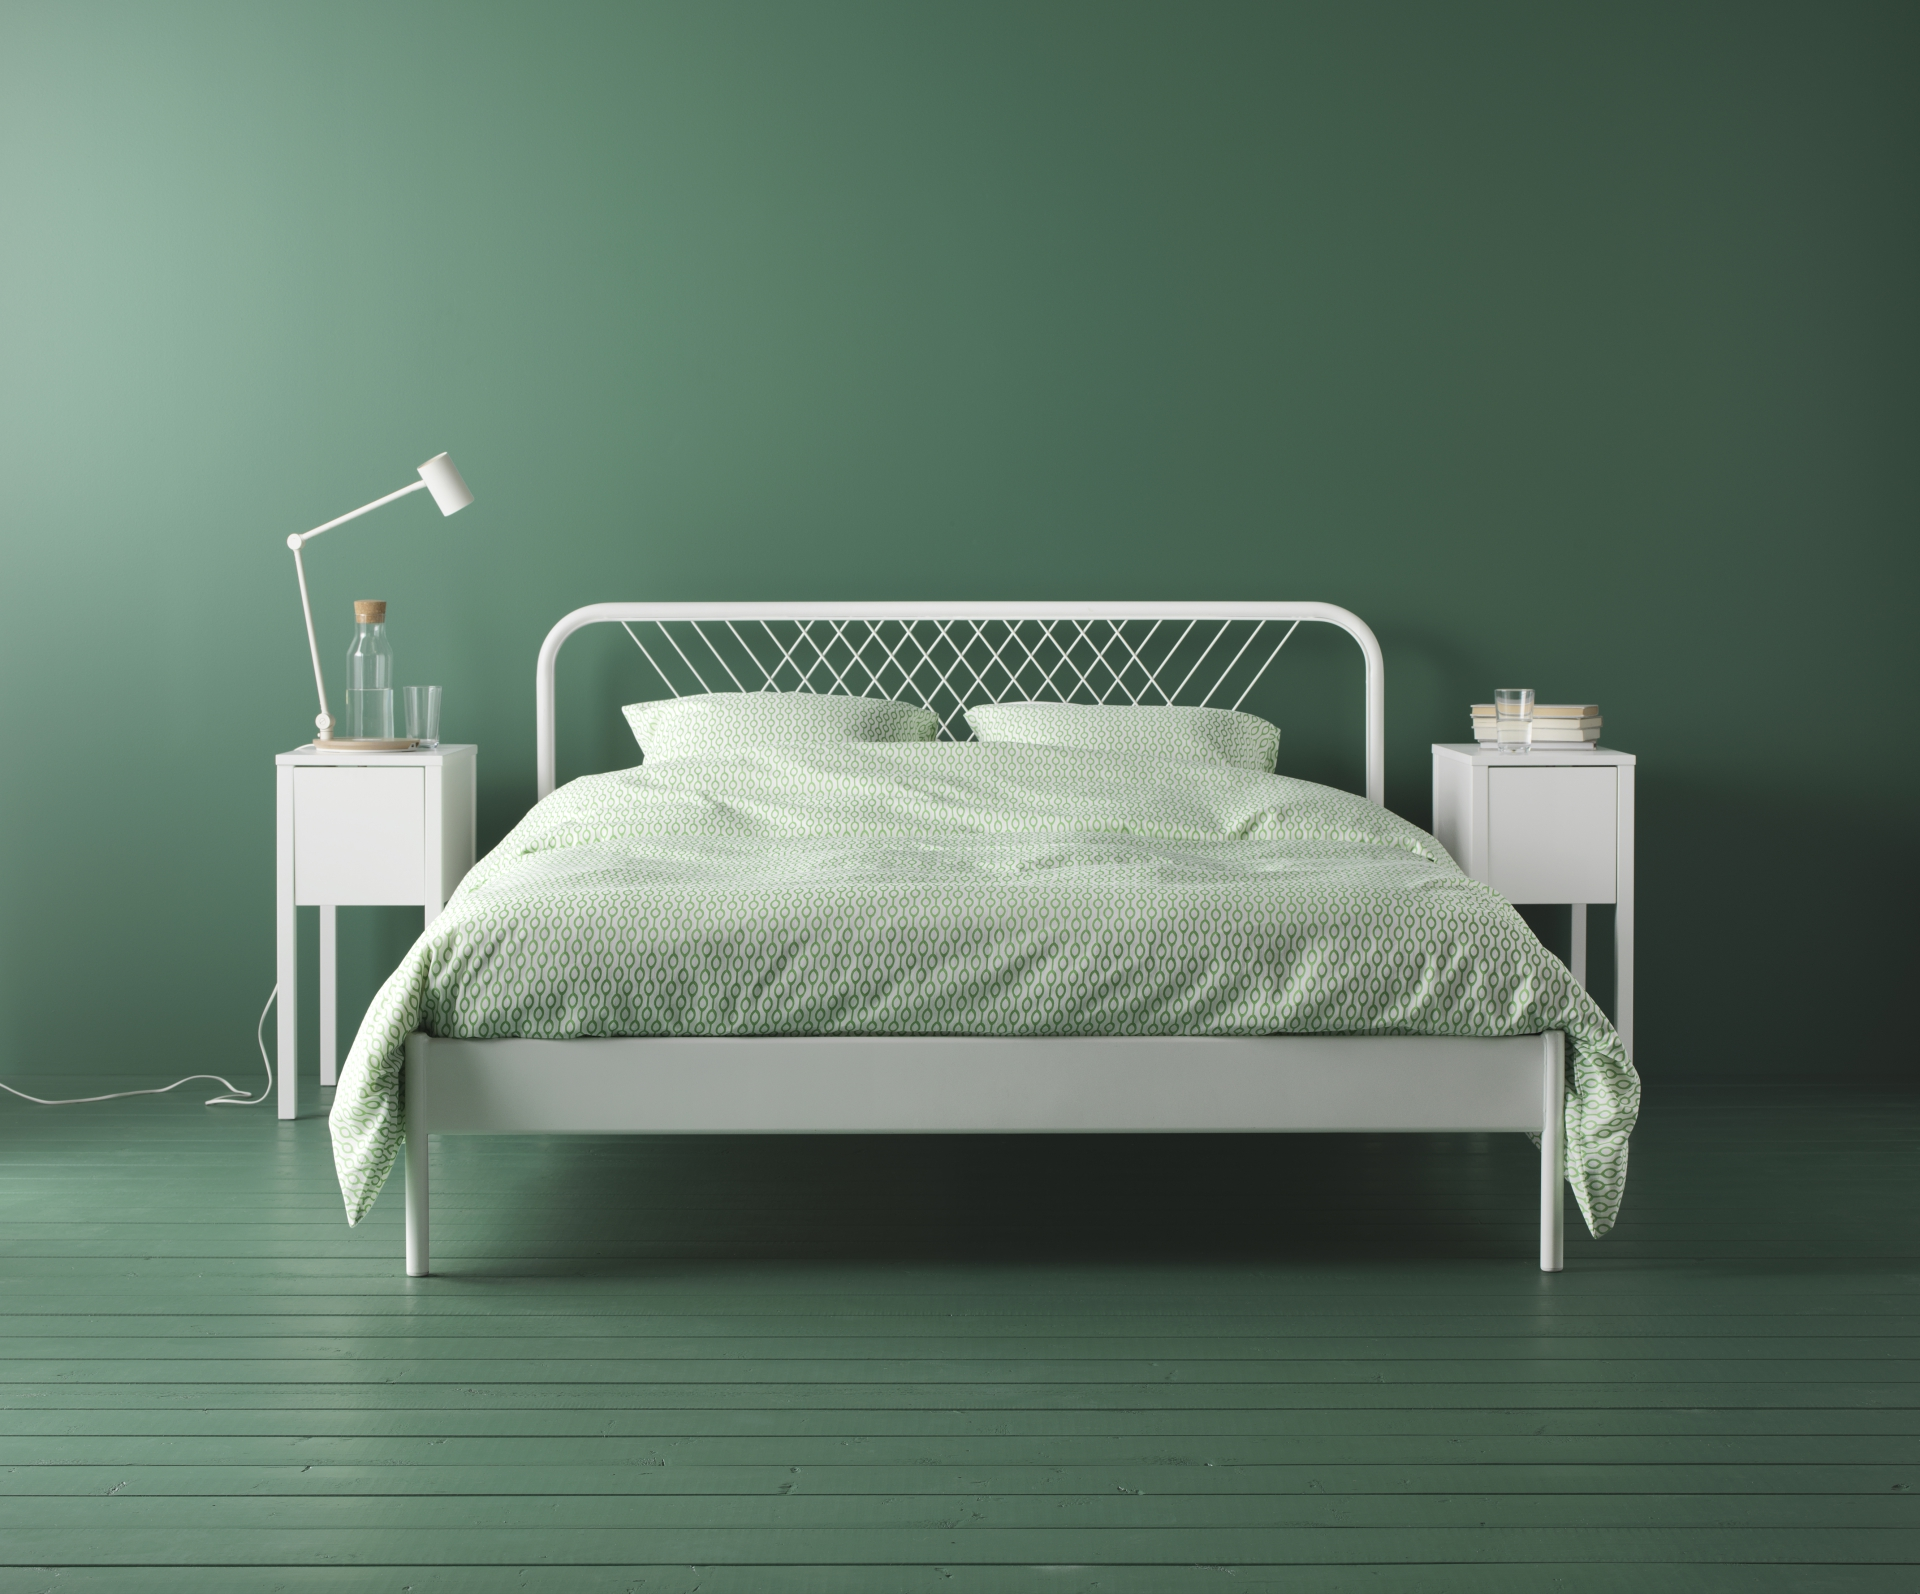 Skorva Ikea Bed Price